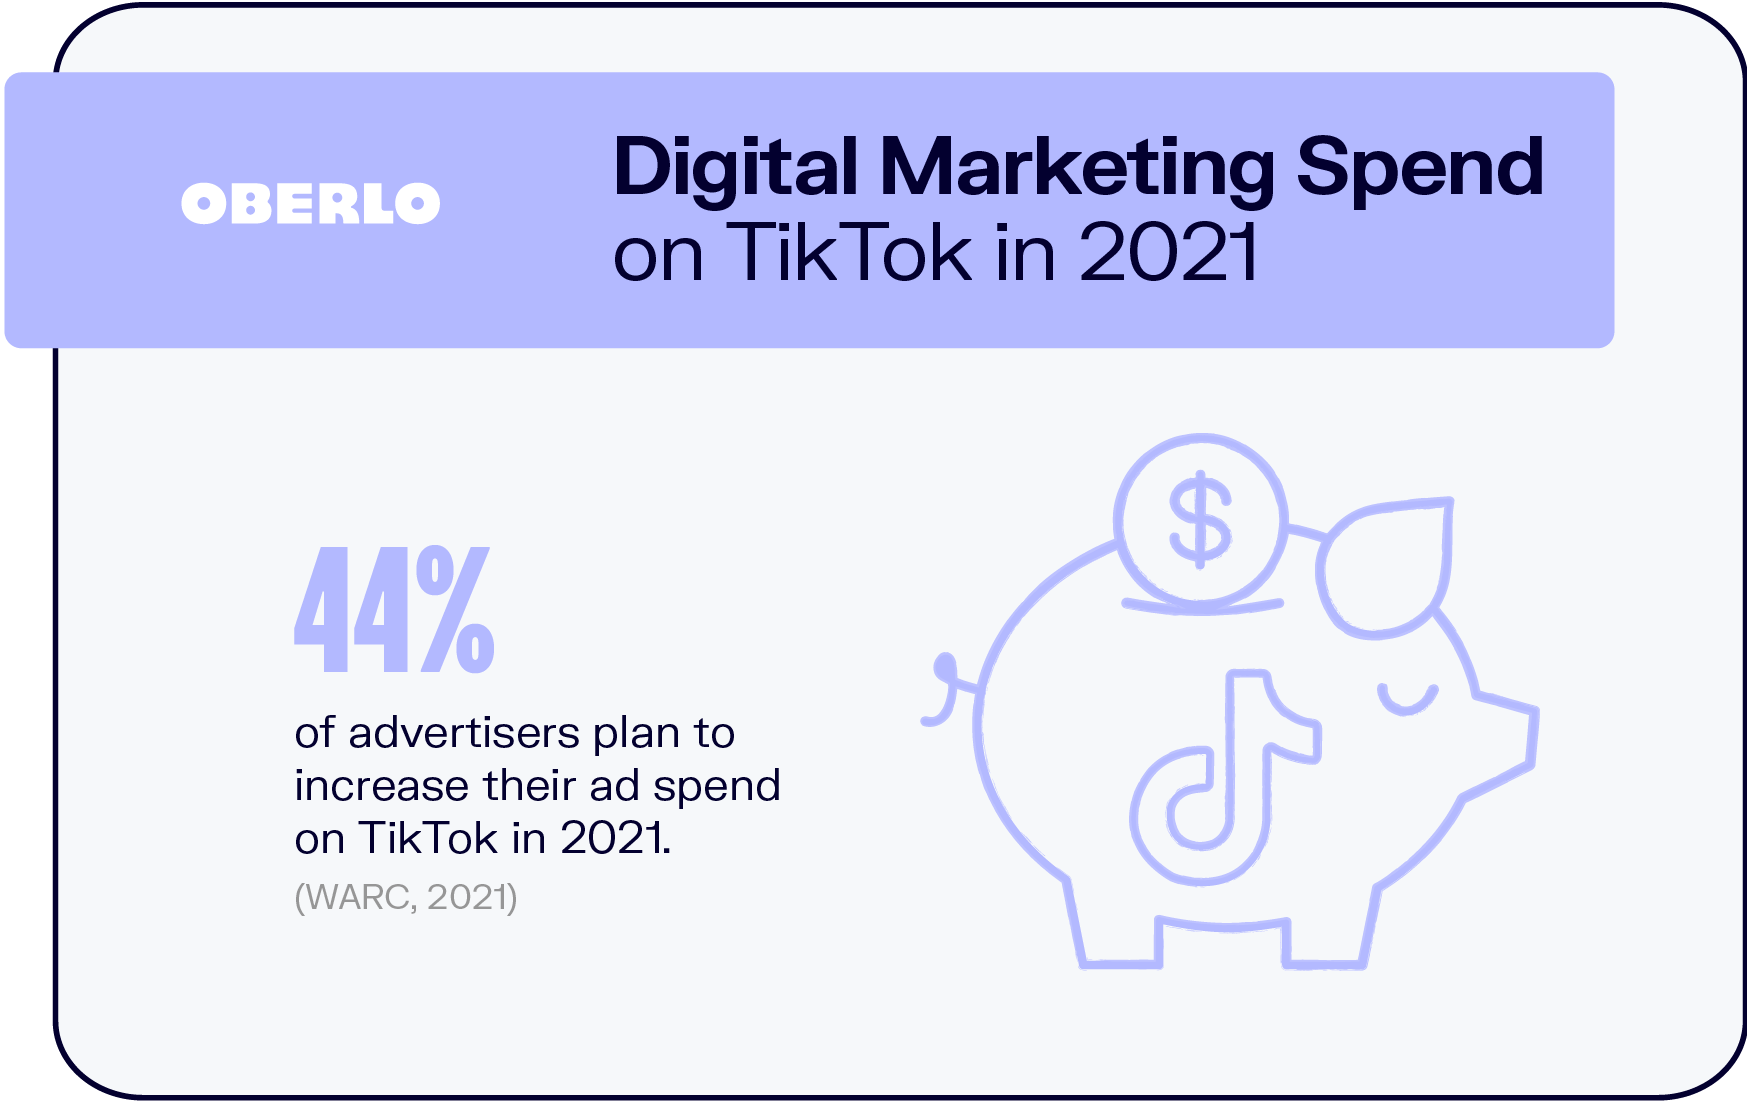 Digital Marketing Spend on TikTok in 2021